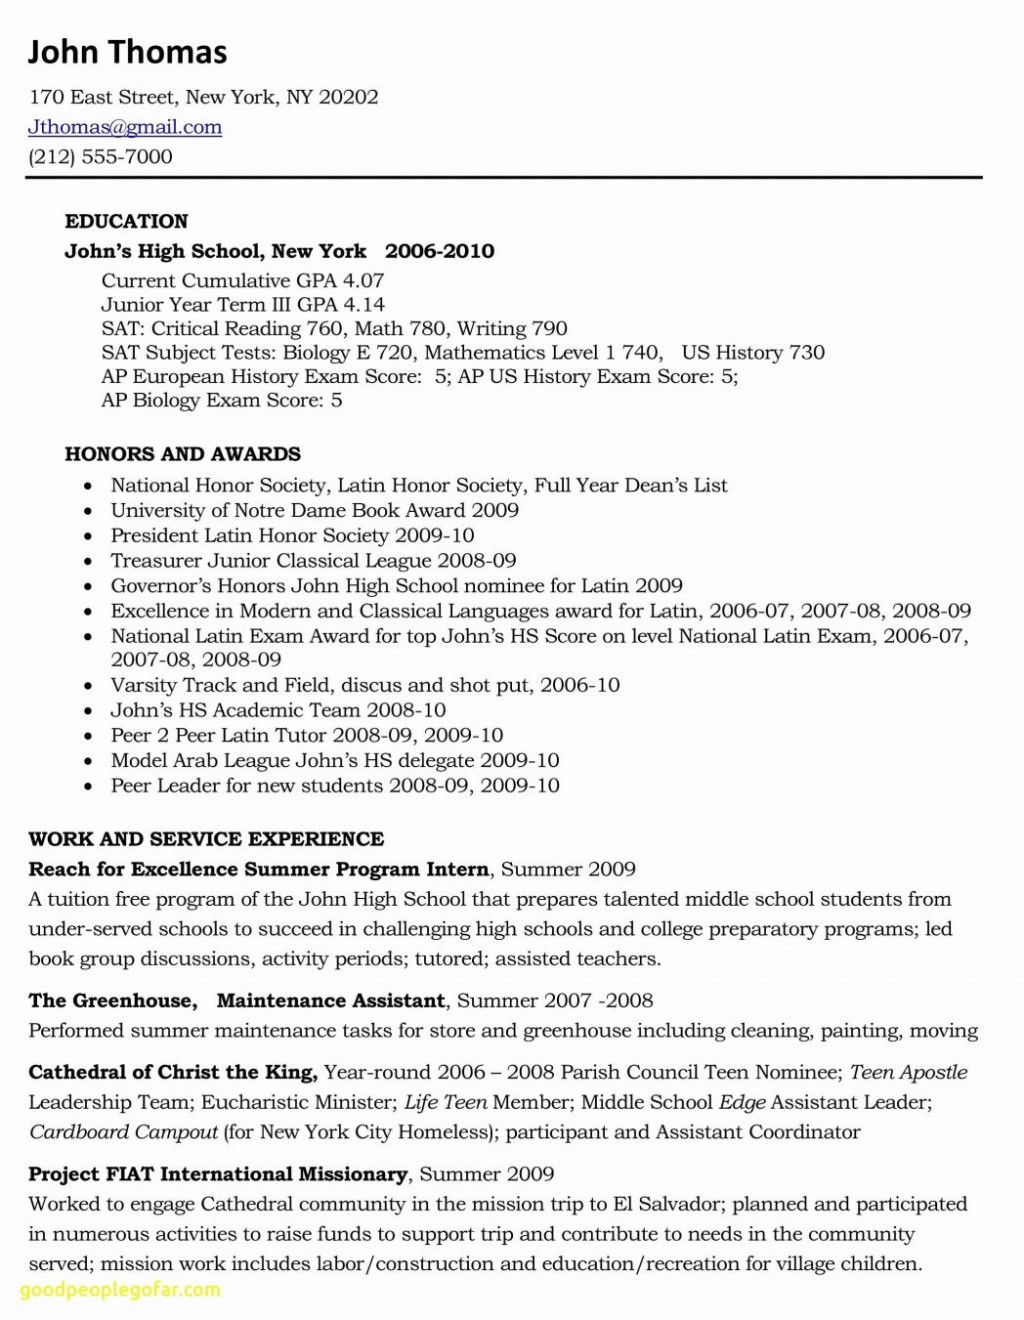 012 High School Assignments Ages Ma In Creative Writing Online Uk Persuasive Essay Topics For Pdf Resume Groupon Unique Group Coupon Simple Snatchnet Pa Argumentative Middle With Articles Imposing Christian Large